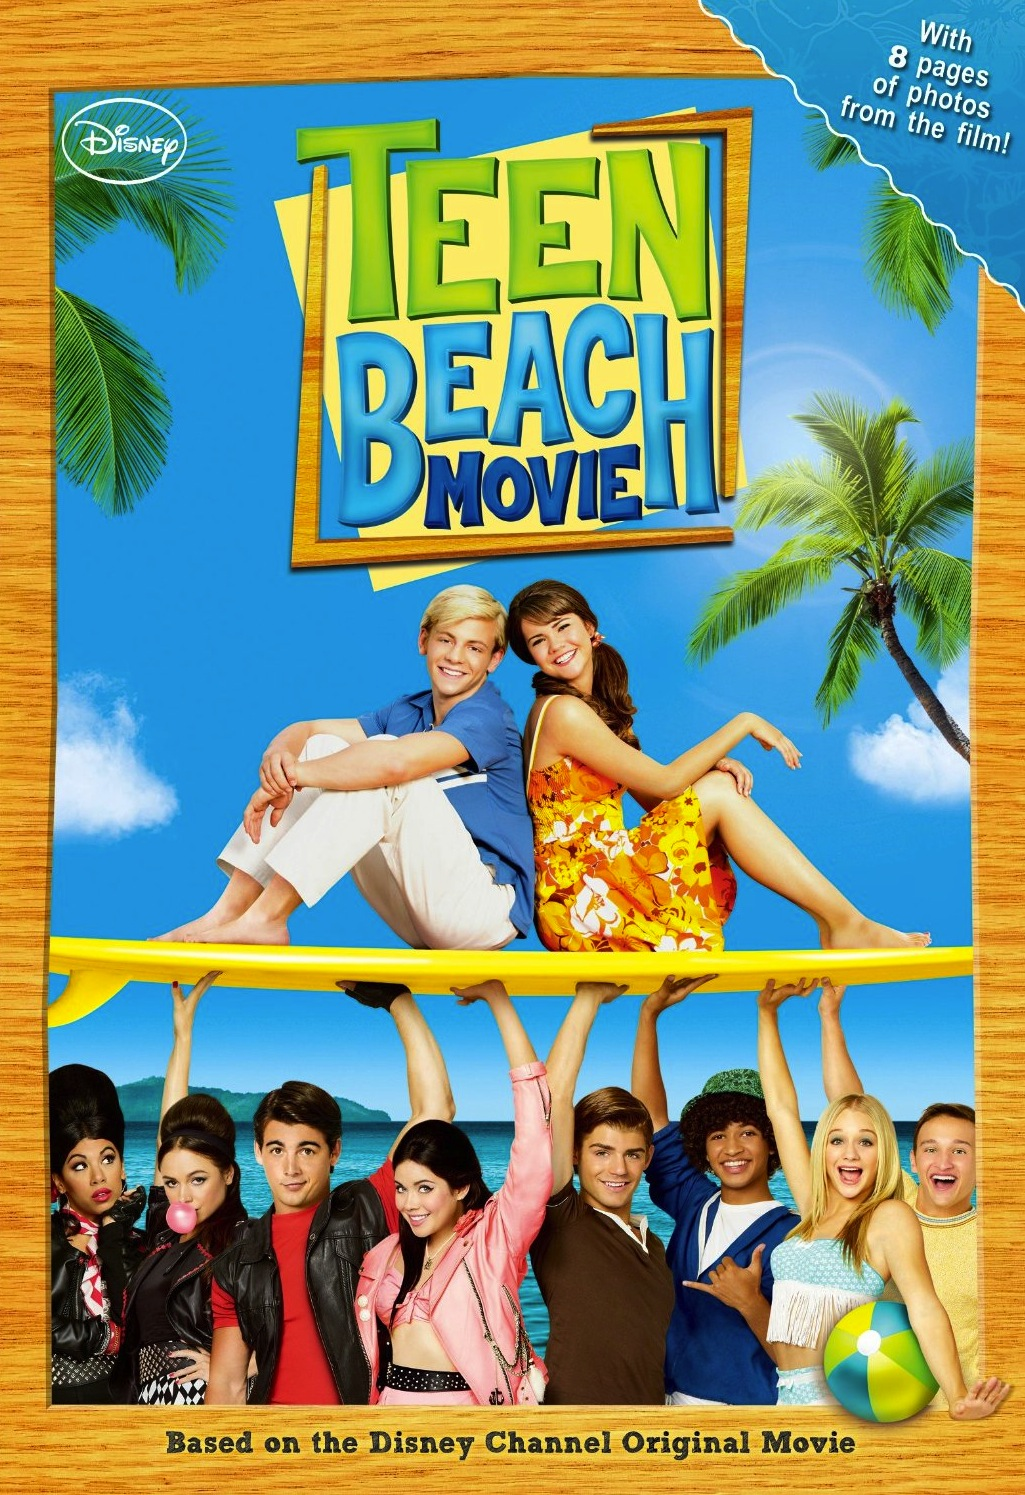 Original Movie, Teen Beach Movie is set to premiere on July 19, 2013